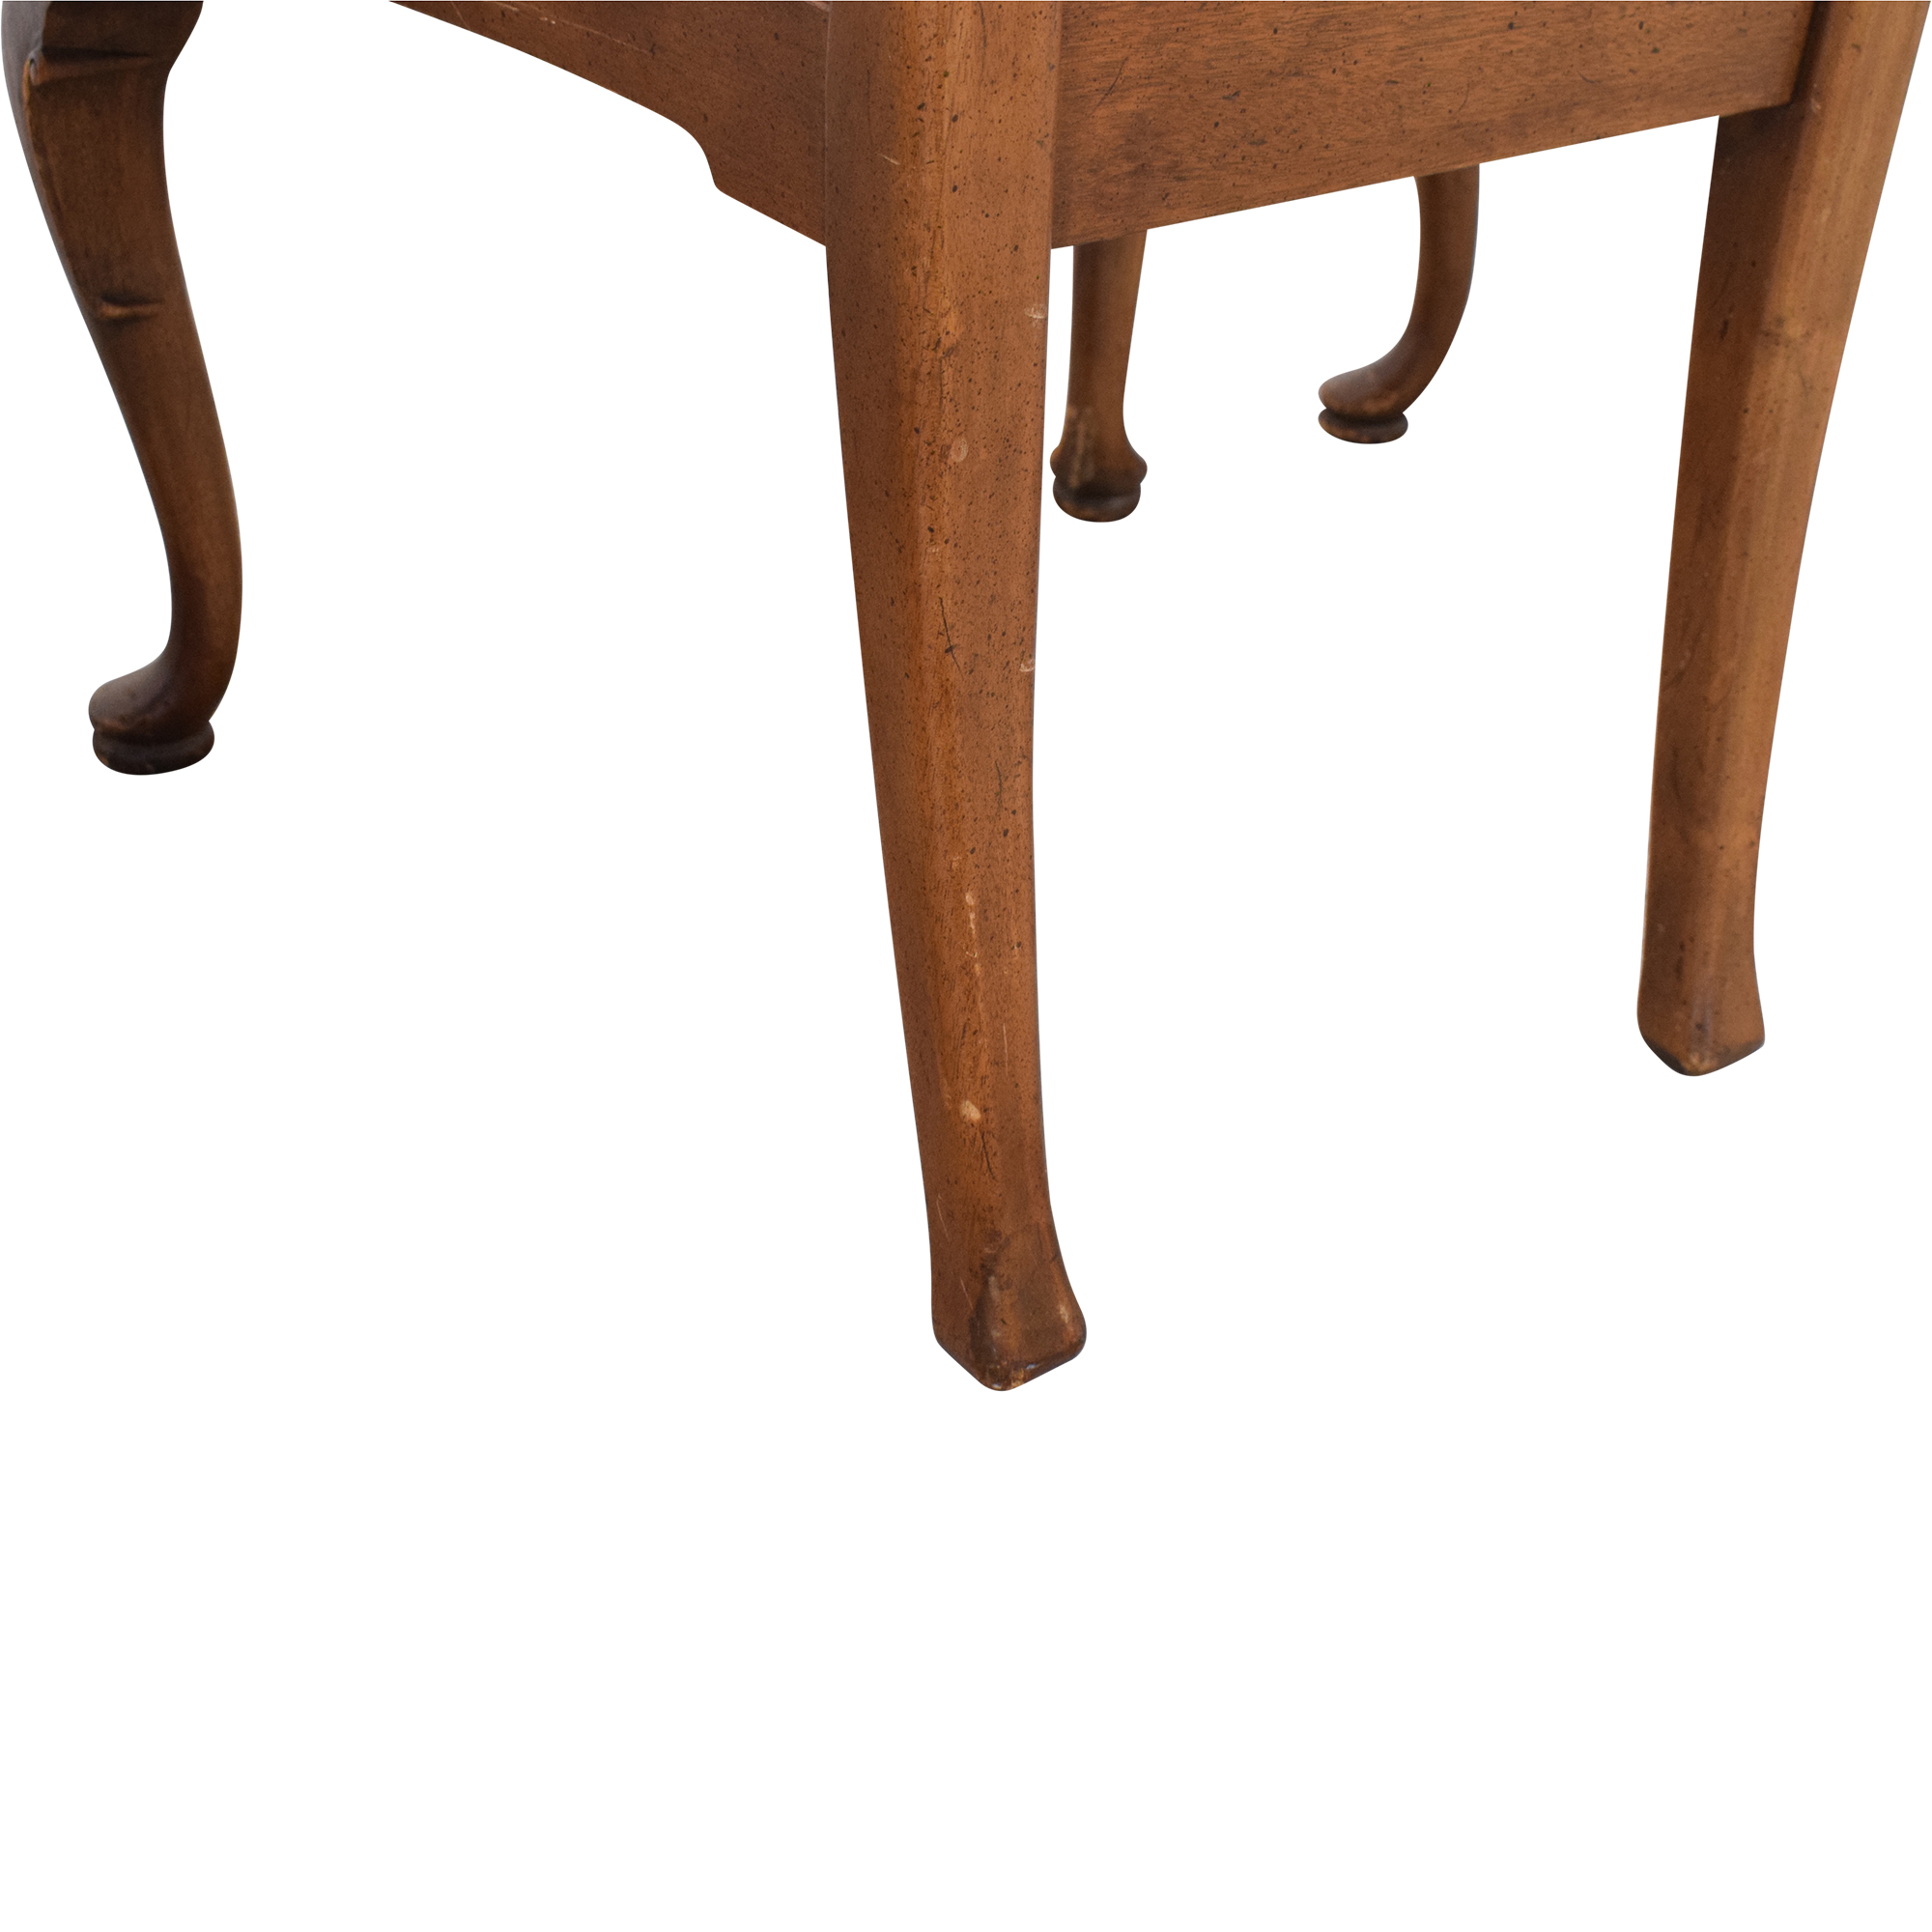 Henredon Furniture Henredon Queen Anne Chairs for sale